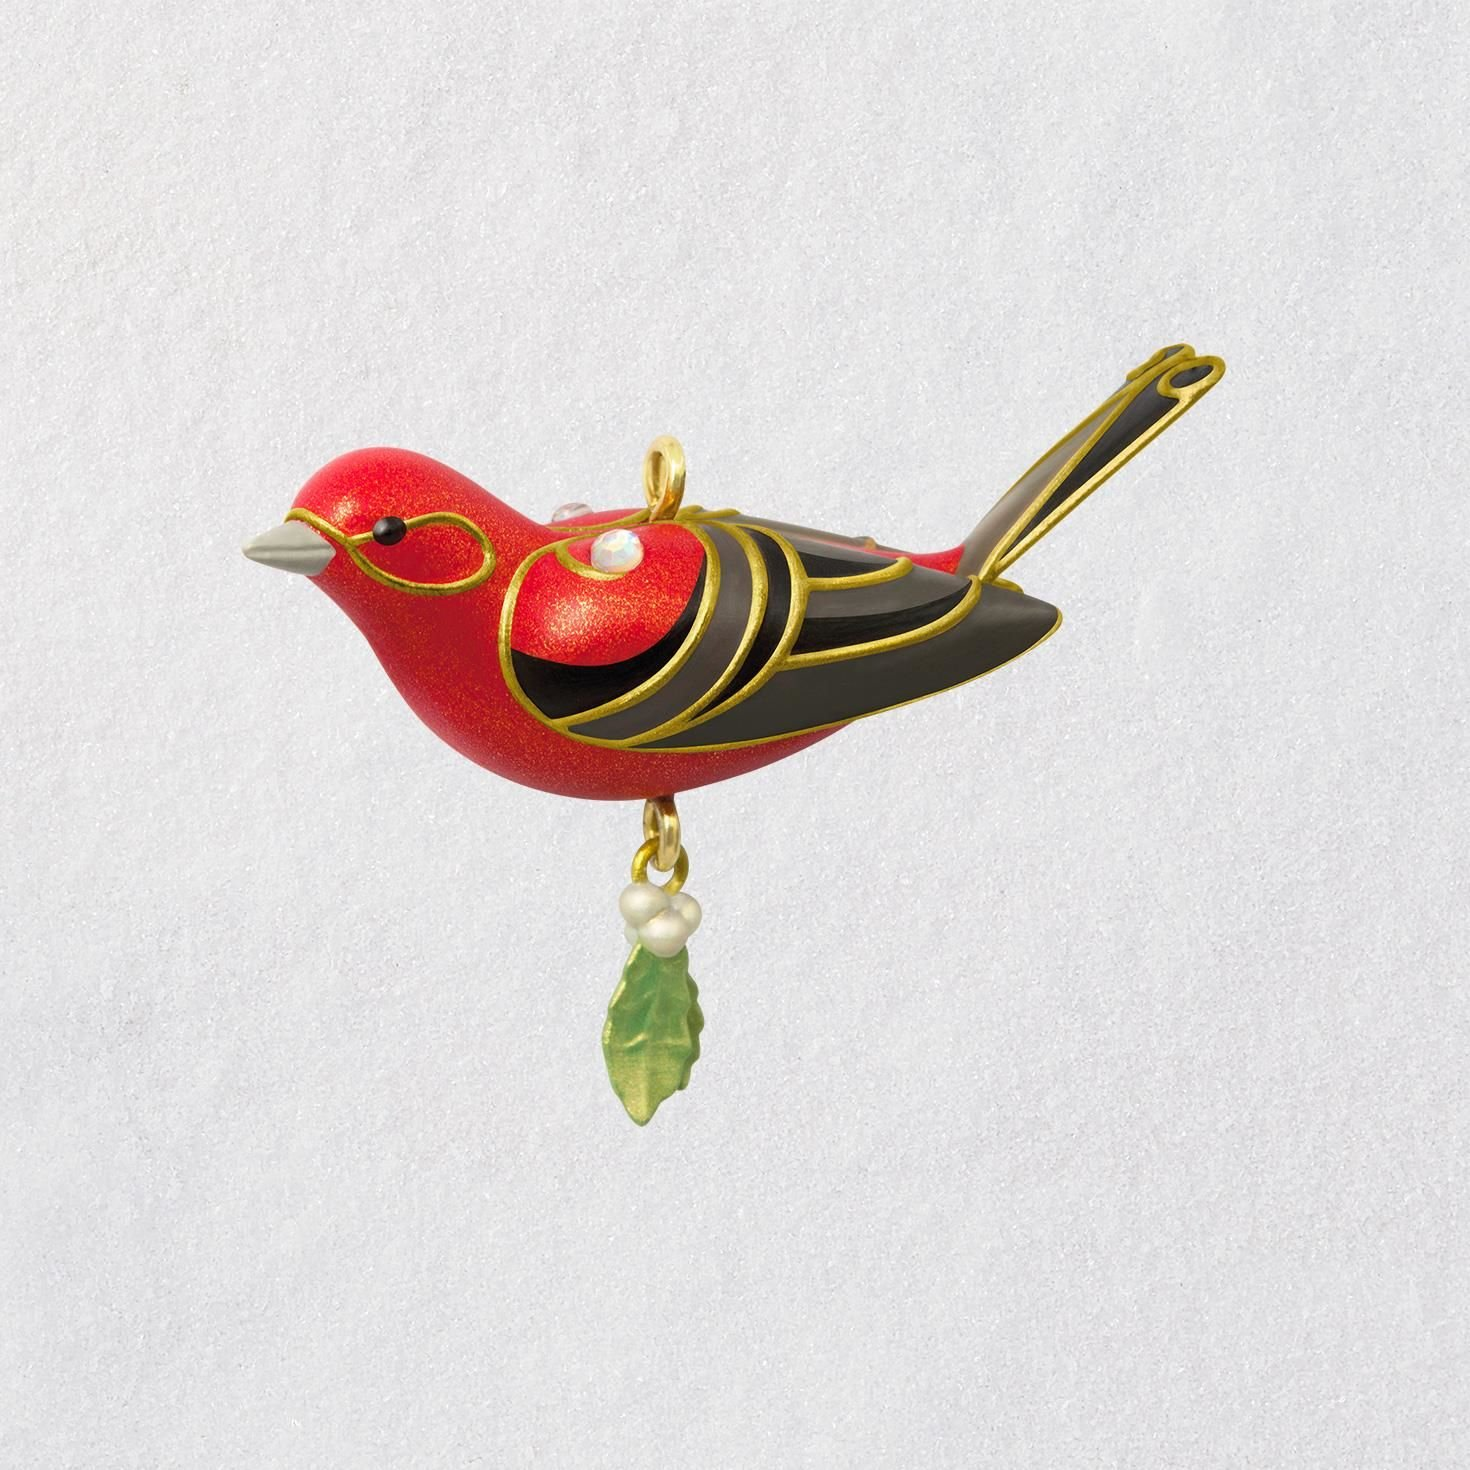 Hallmark Keepsake Mini Christmas Ornament 2018 Year Dated, Red Tanager Bird Miniature, 1.13''